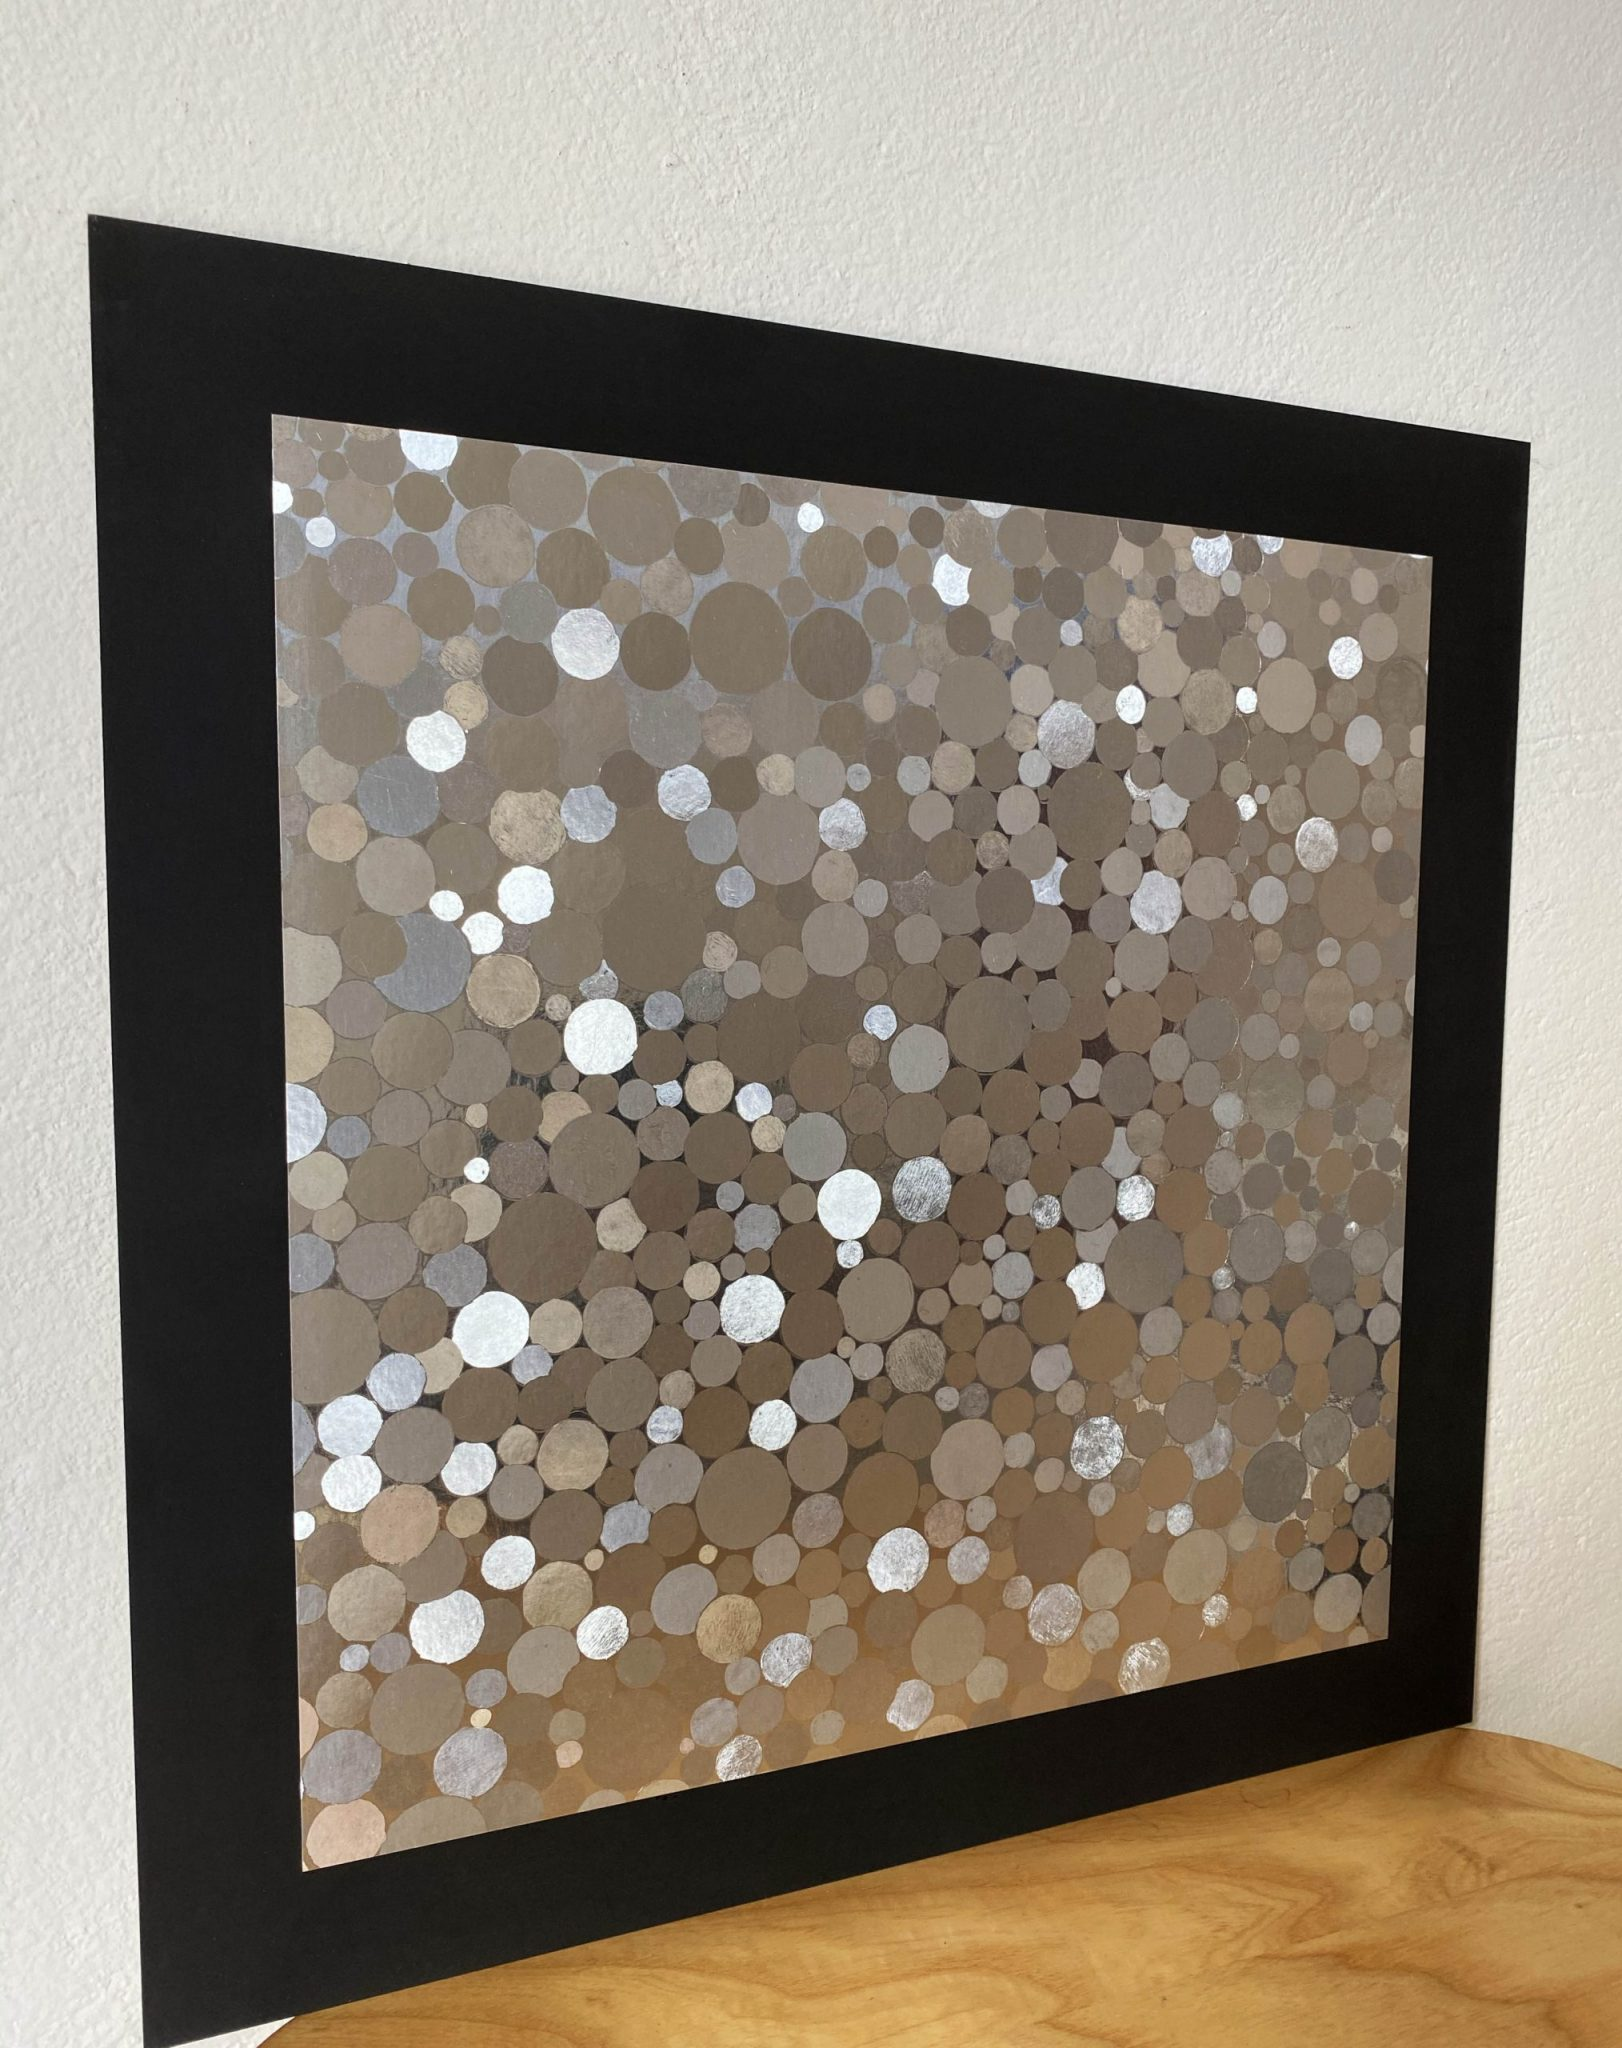 abstract-round-spots-silver-40-x-40-gravure-foil-art-etching